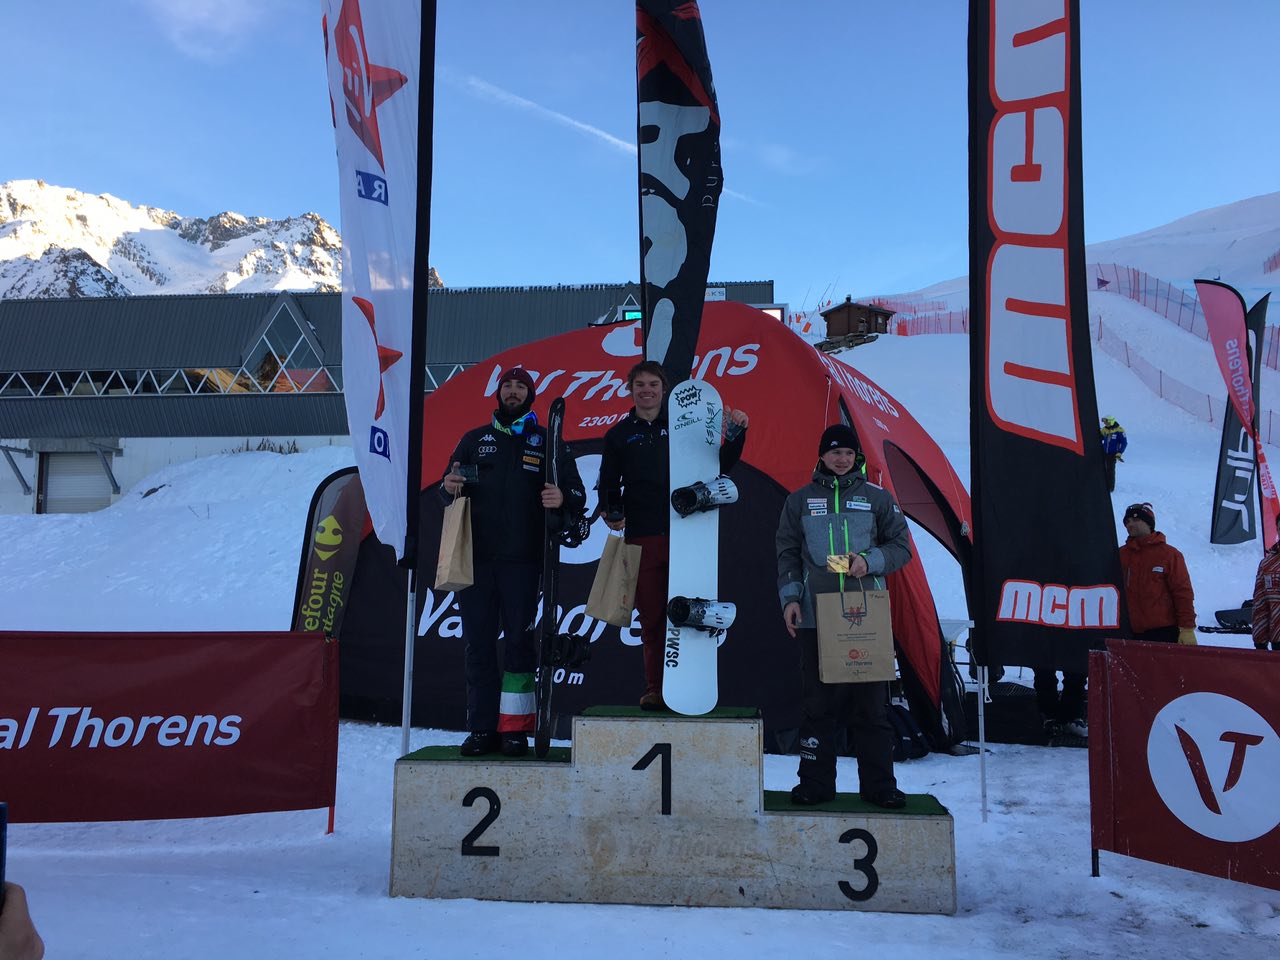 Coppa Europa Val Thorens: Menconi è secondo, Gallina quarta